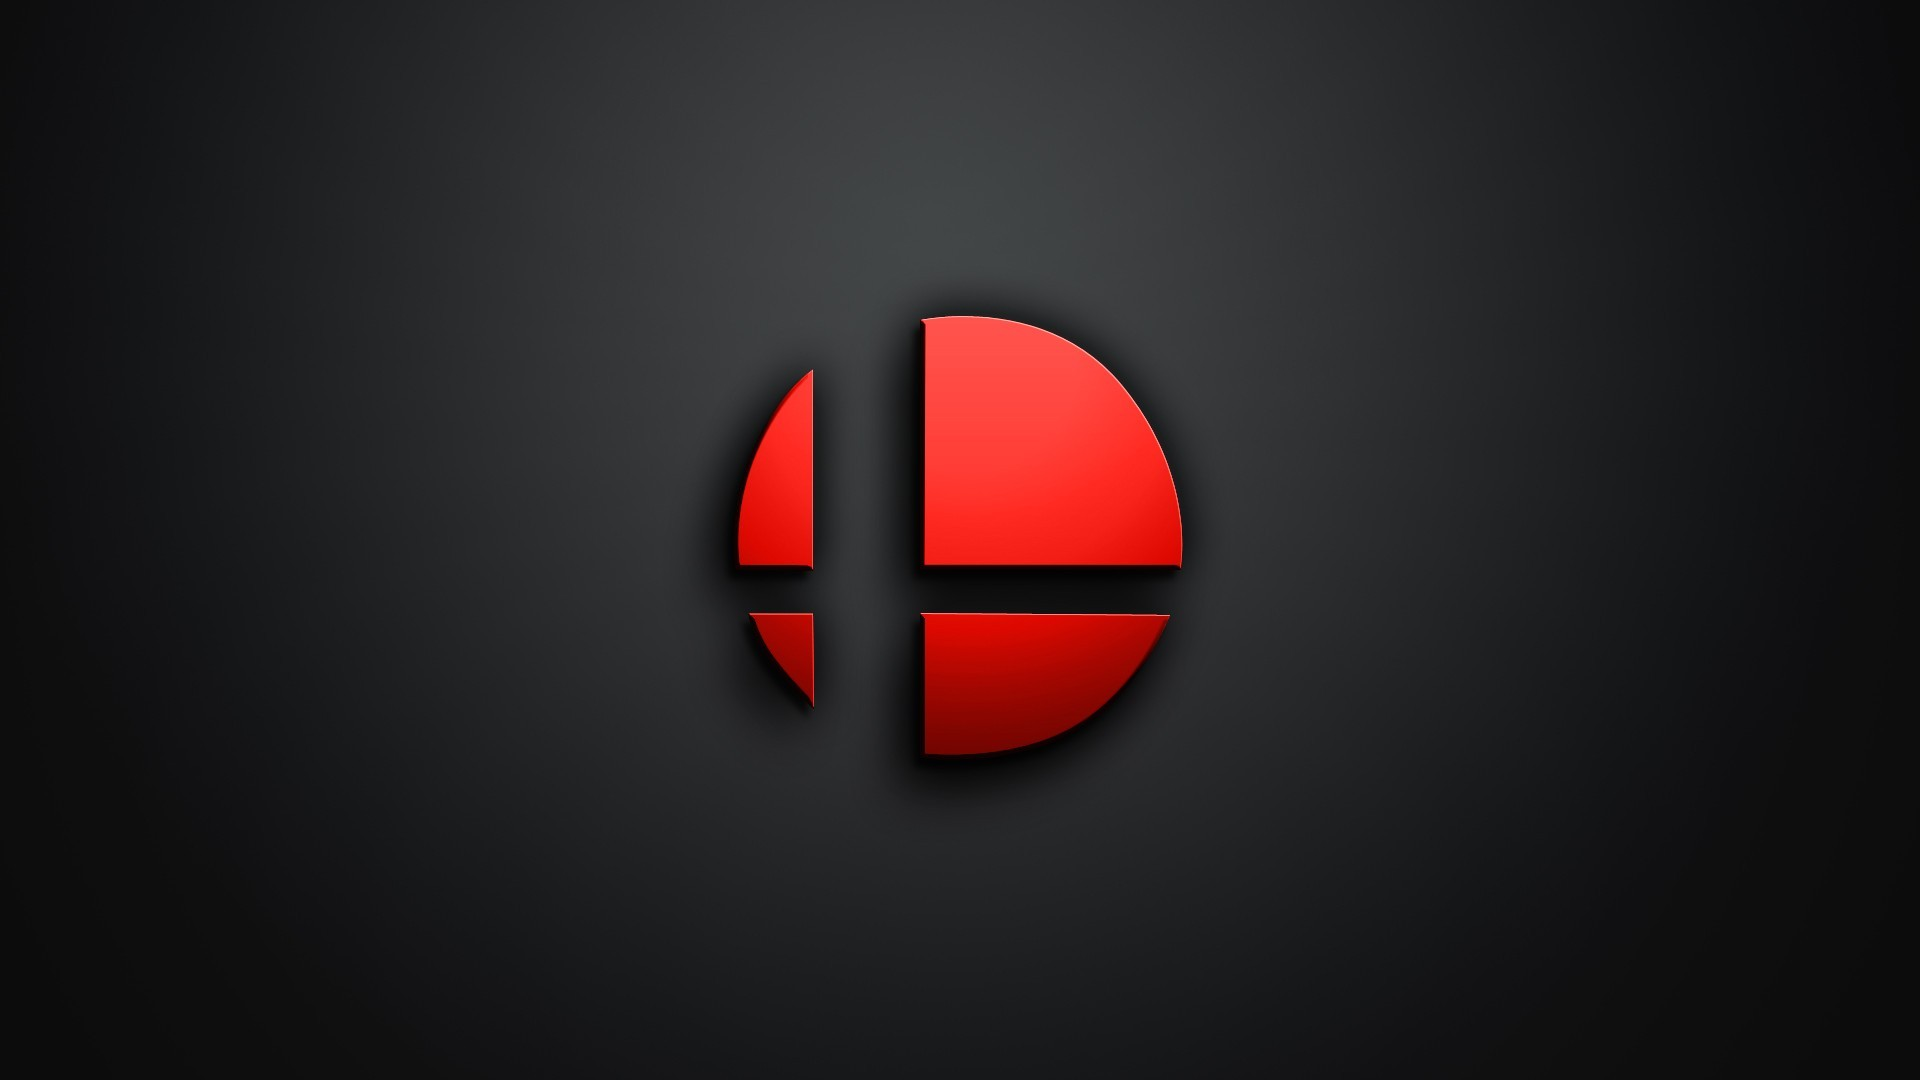 Smash Ball Full HD Wallpaper And Background Image